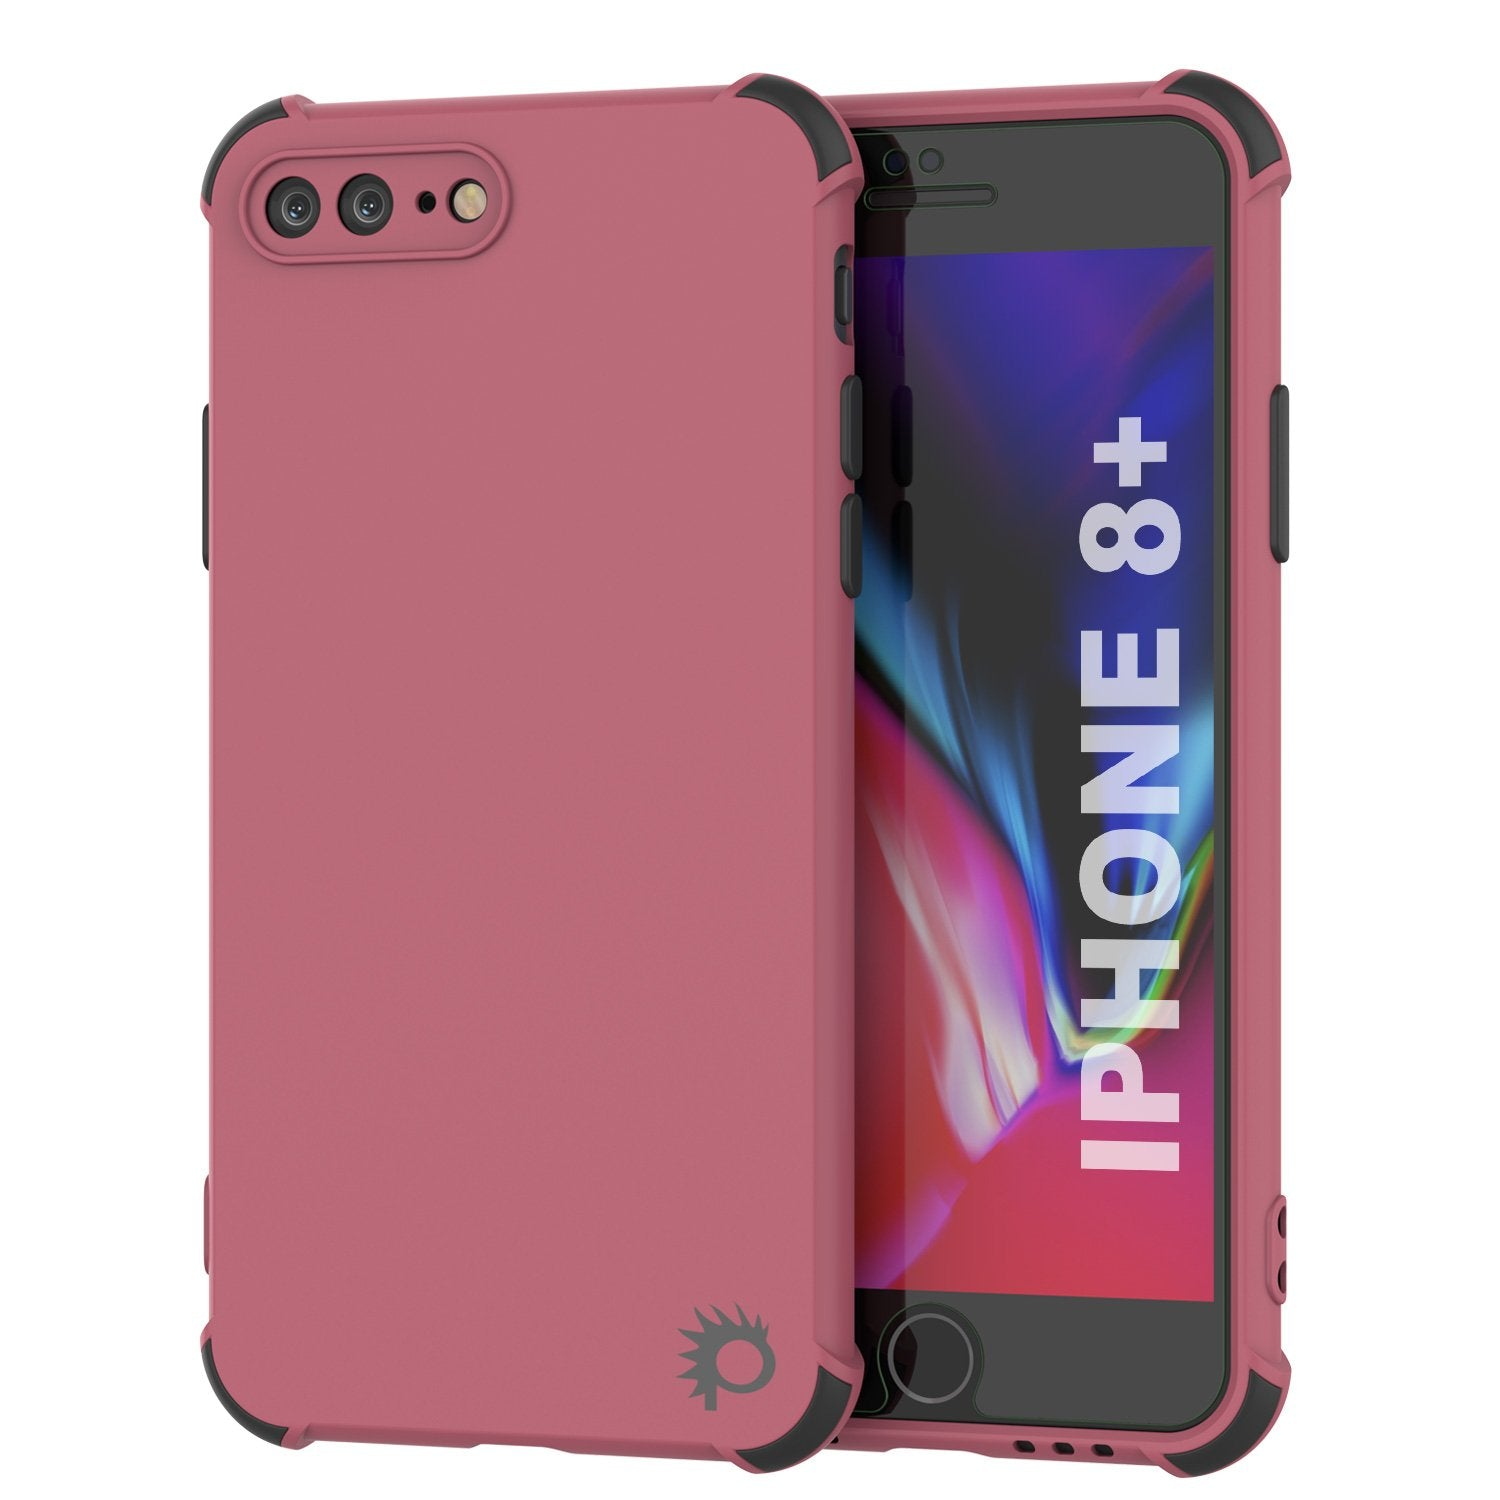 Punkcase Protective & Lightweight TPU Case [Sunshine Series] for iPhone 8+ Plus [Rose]